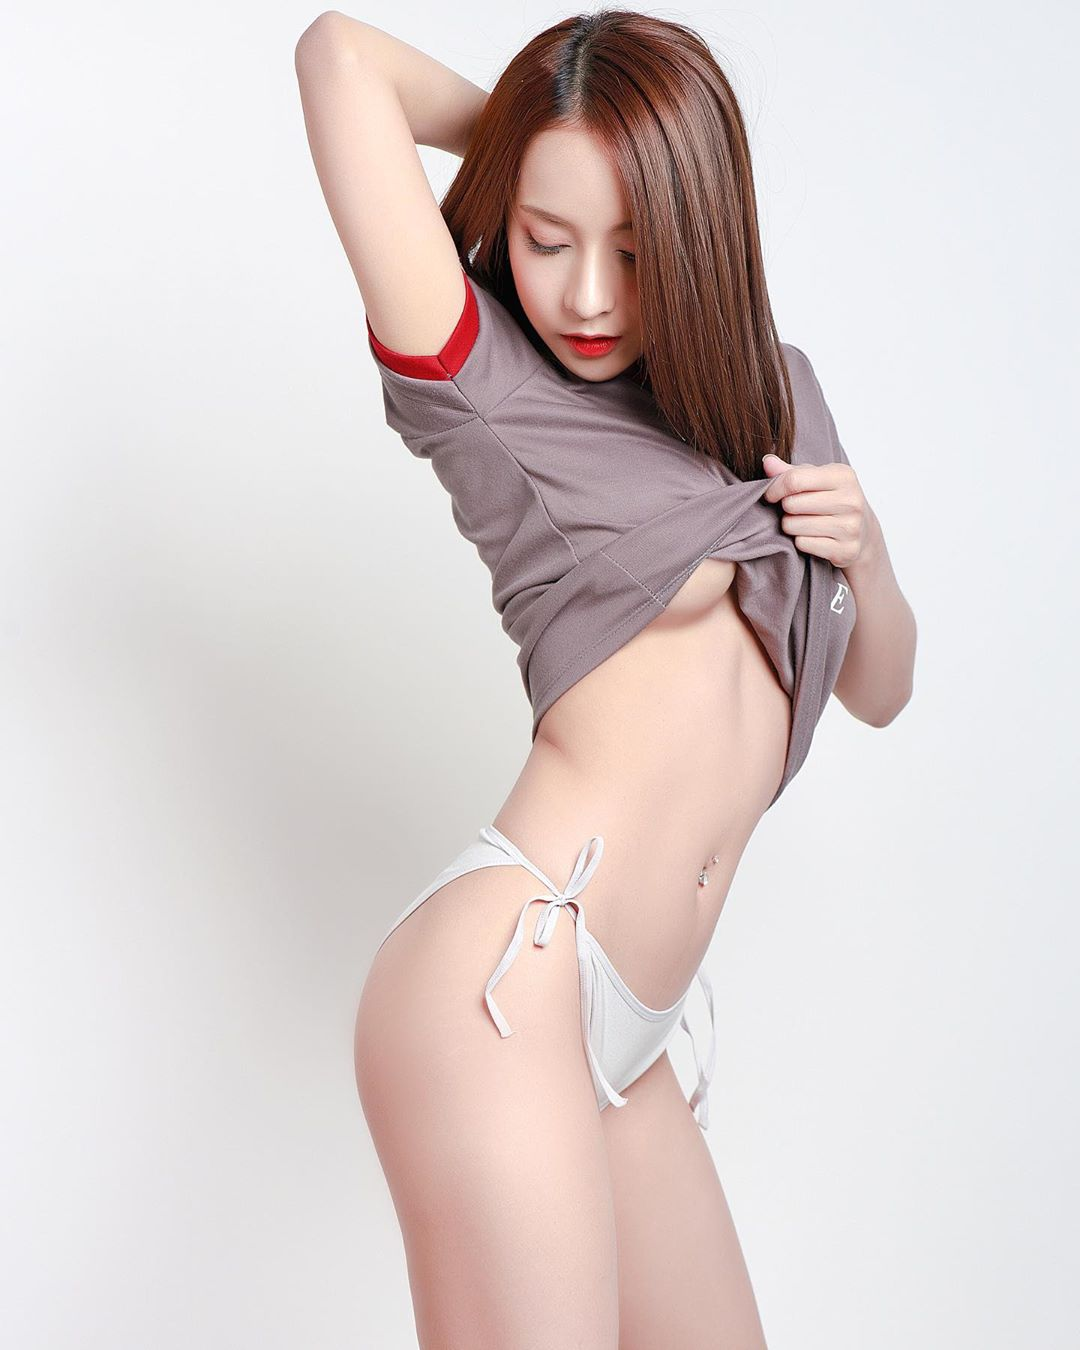 nude vn official website dj thái lan 33